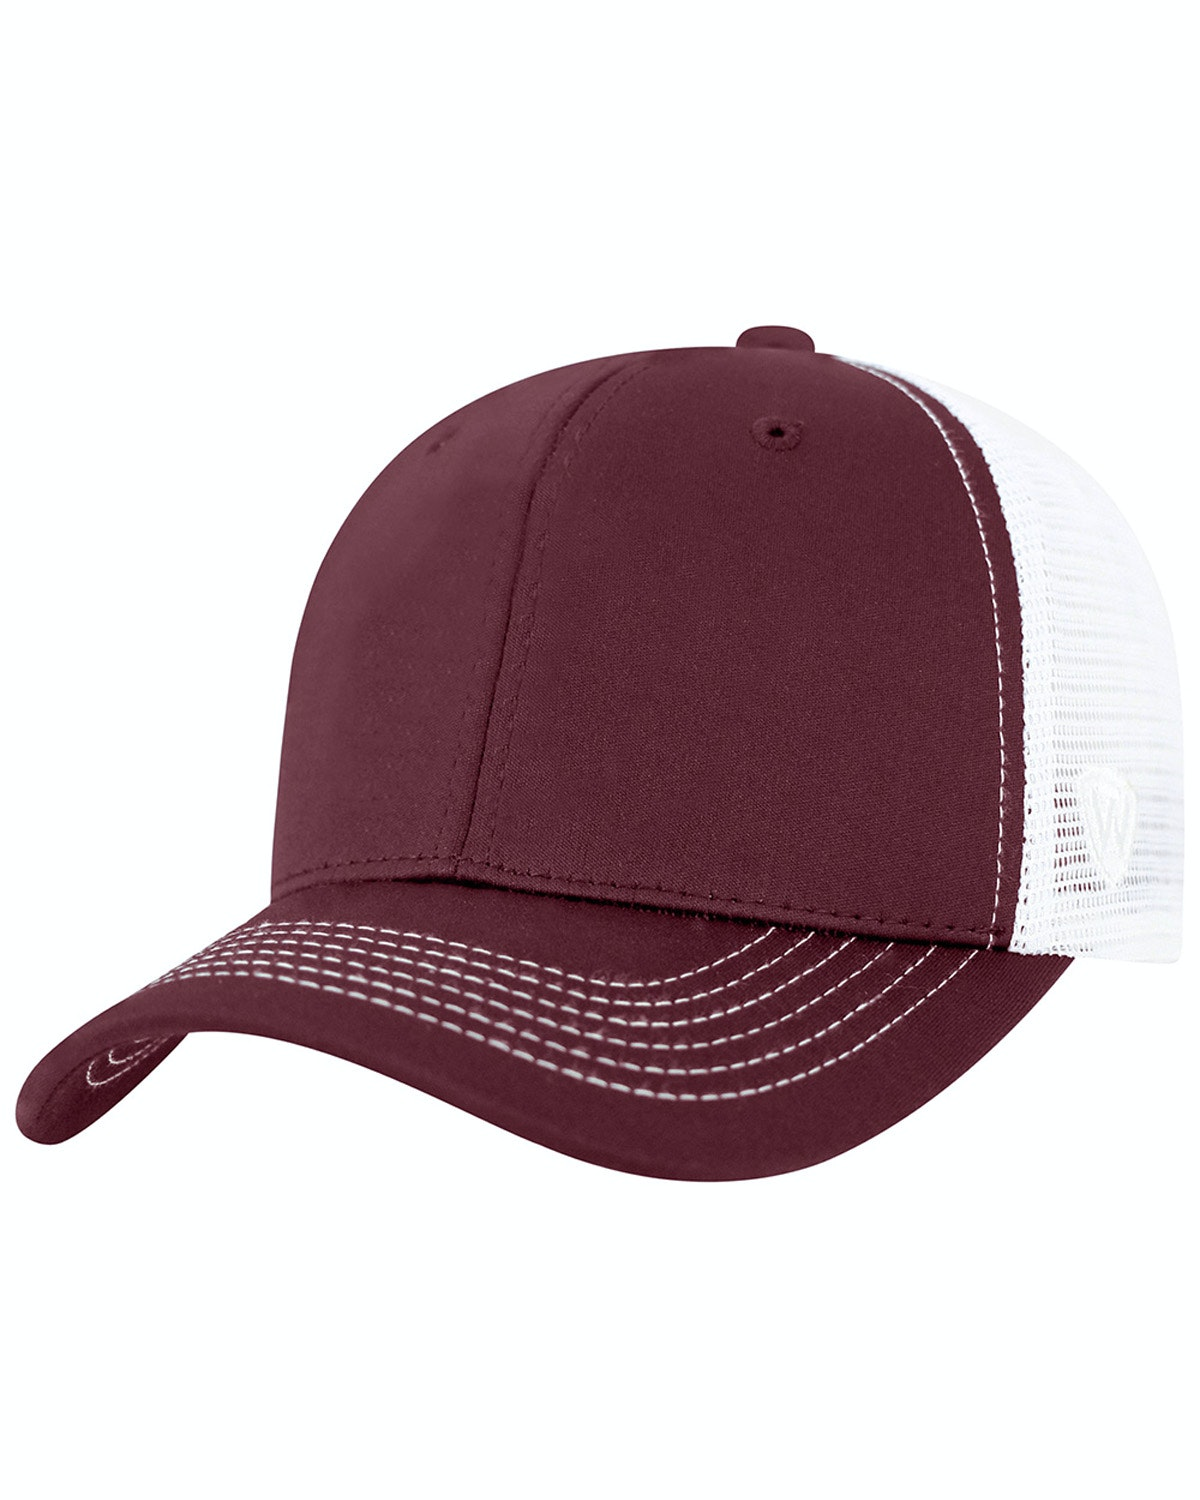 Top Of The World TW5505 Burgundy/ White